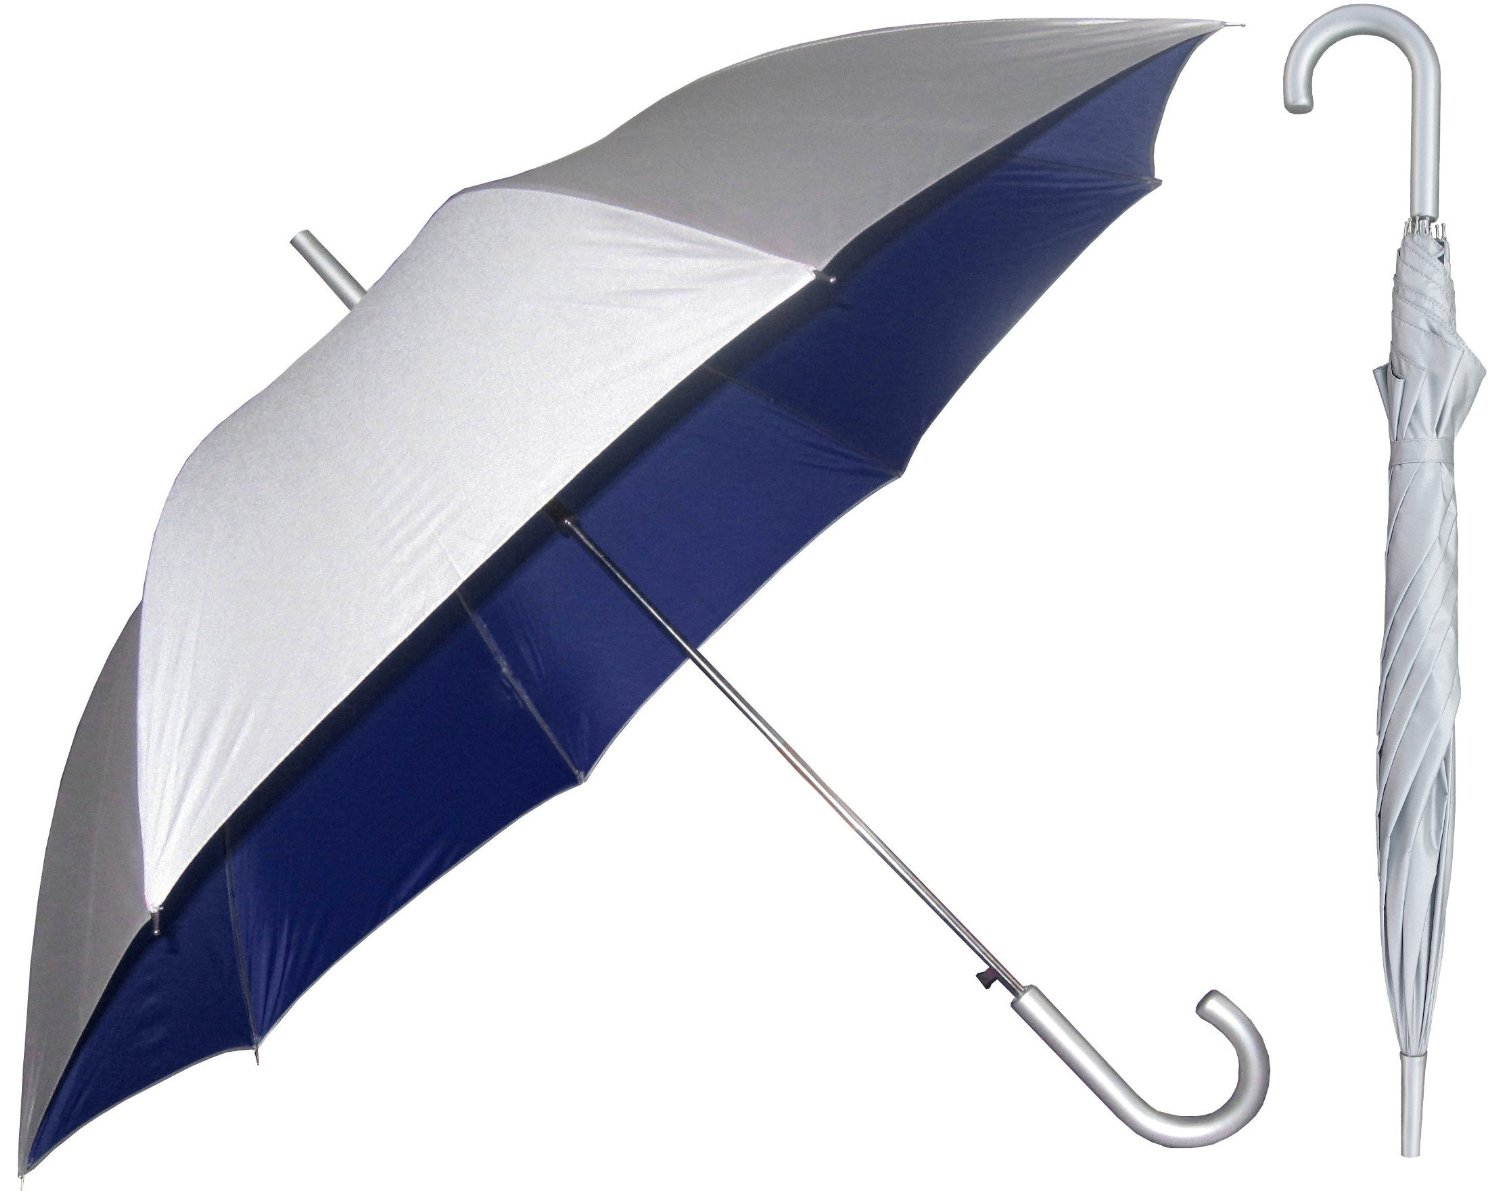 Silver Sunblock Umbrella with Navy Blue Lining - UV Protection Umbrella for Rain or Sun